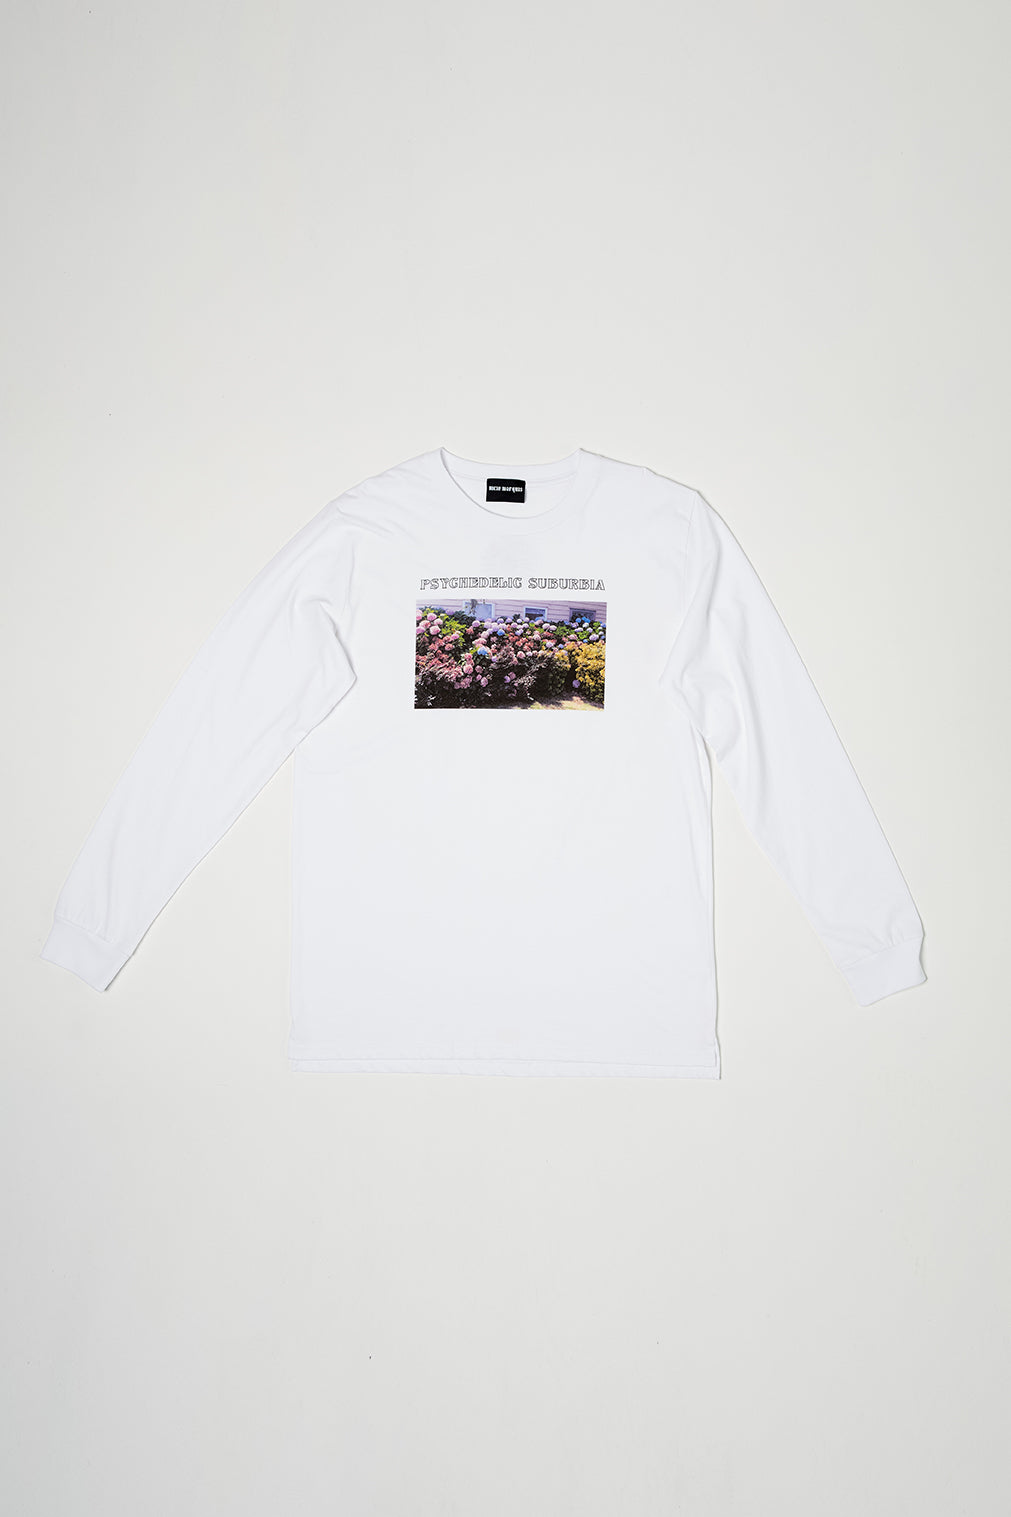 PSYCHEDELIC SUBURBIA MENS LS - WHITE